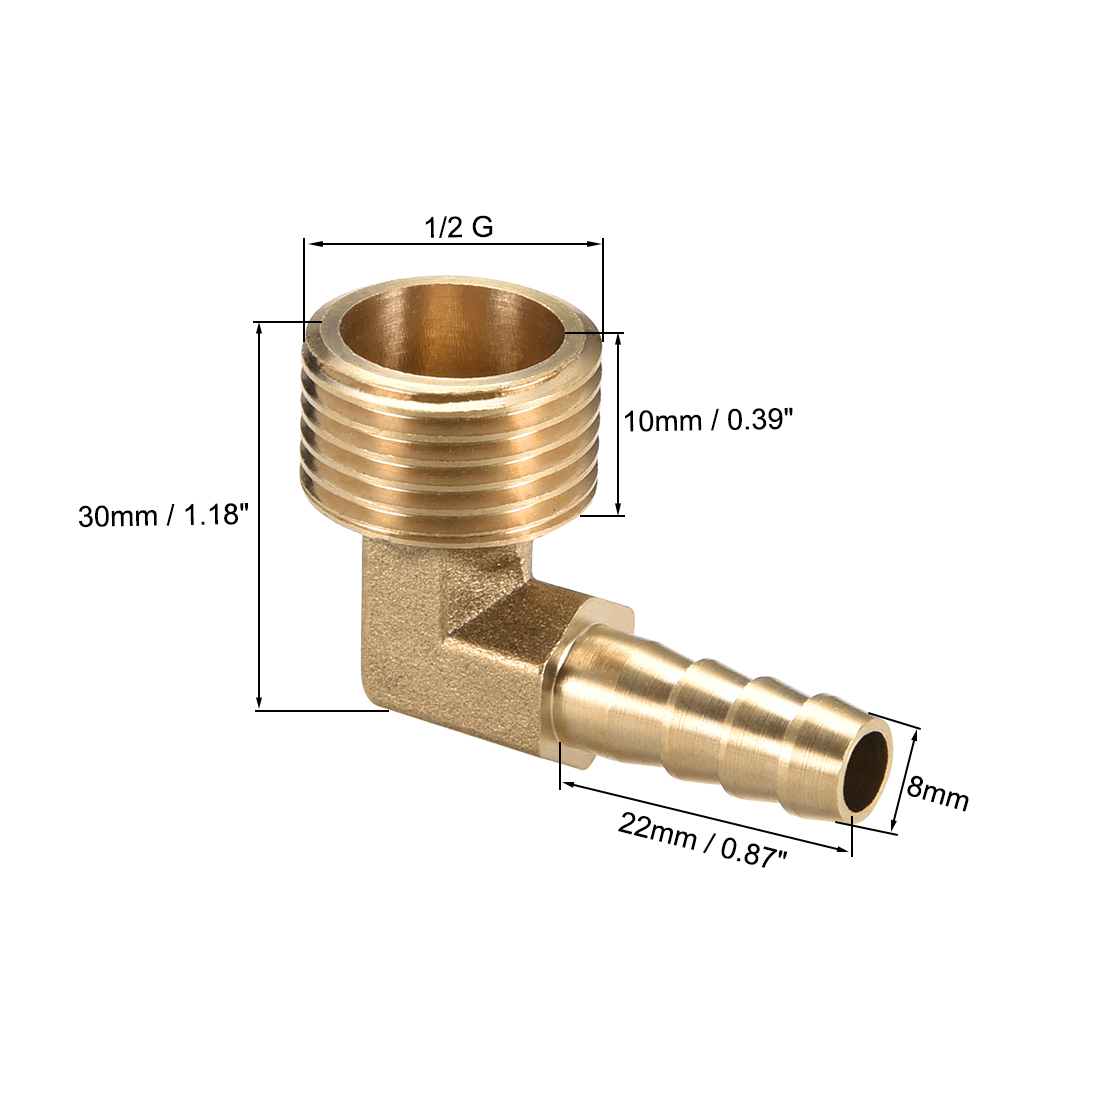 uxcell 8mm to 4mm Barb Brass Hose Fitting 90 Degree Elbow Pipe Connector Coupler Tubing Adapter 2pcs